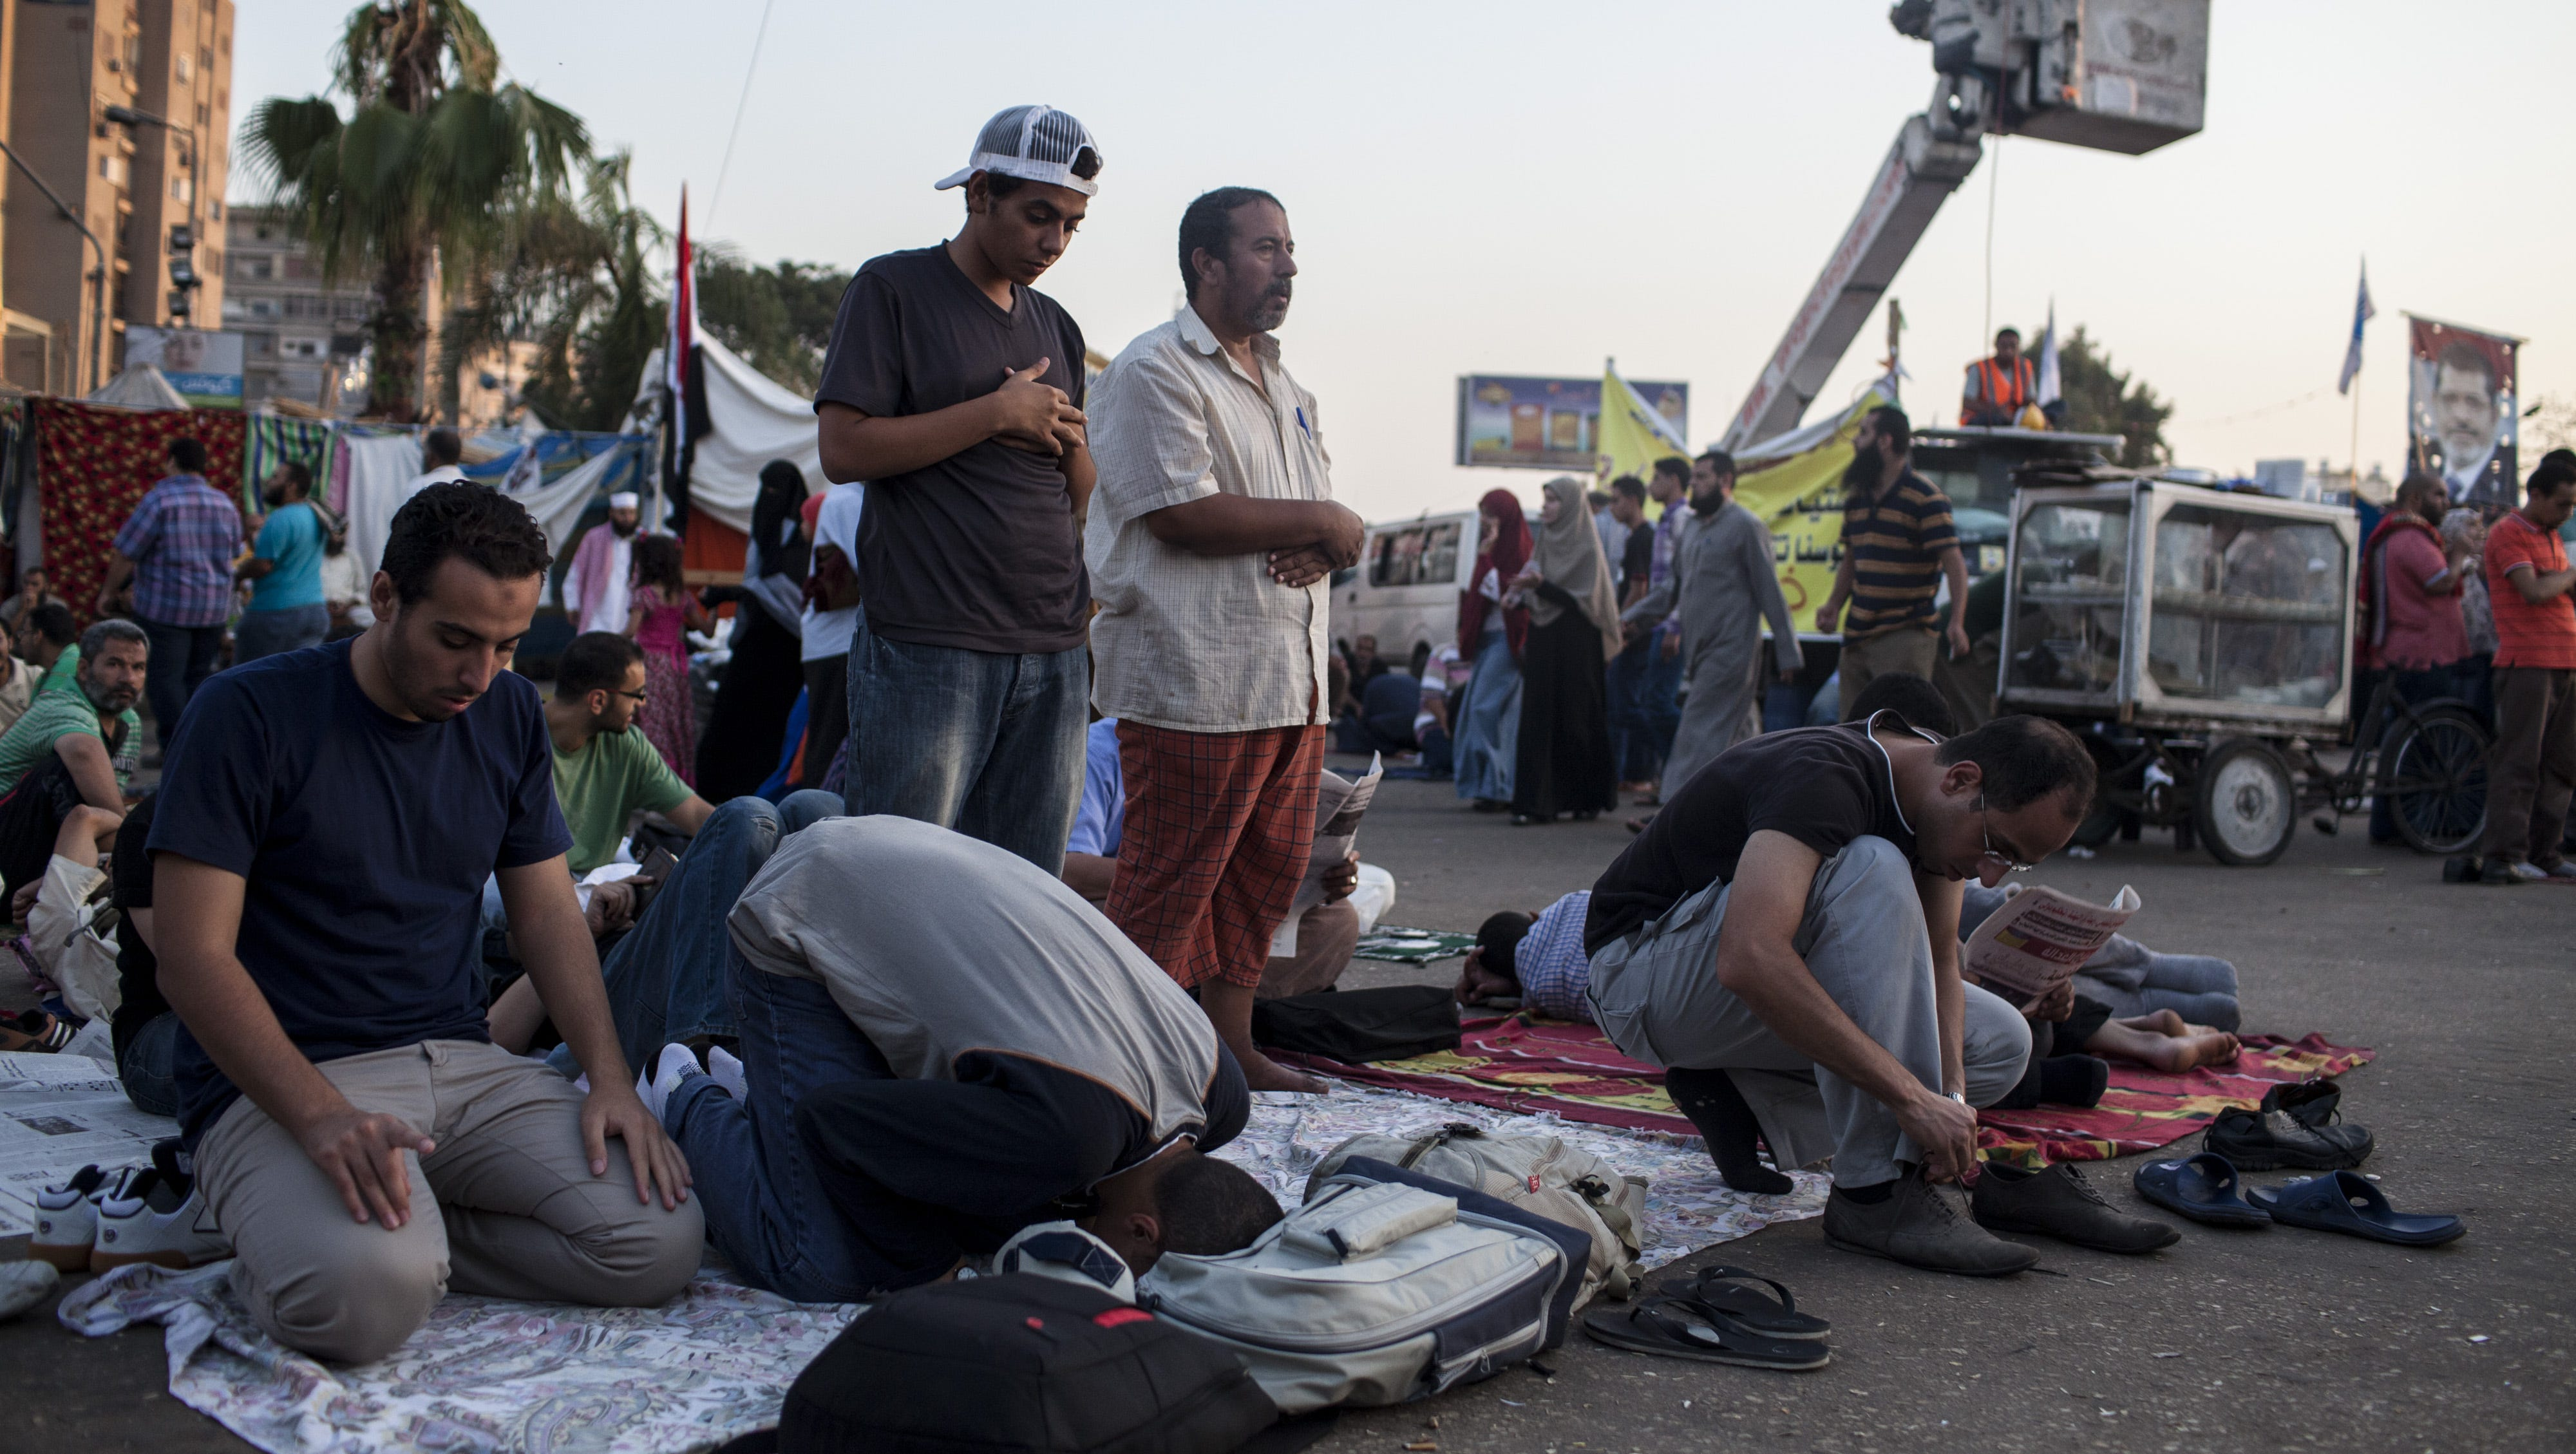 Morsi supporters perform sunrise prayers during a sit-in Aug. 12.